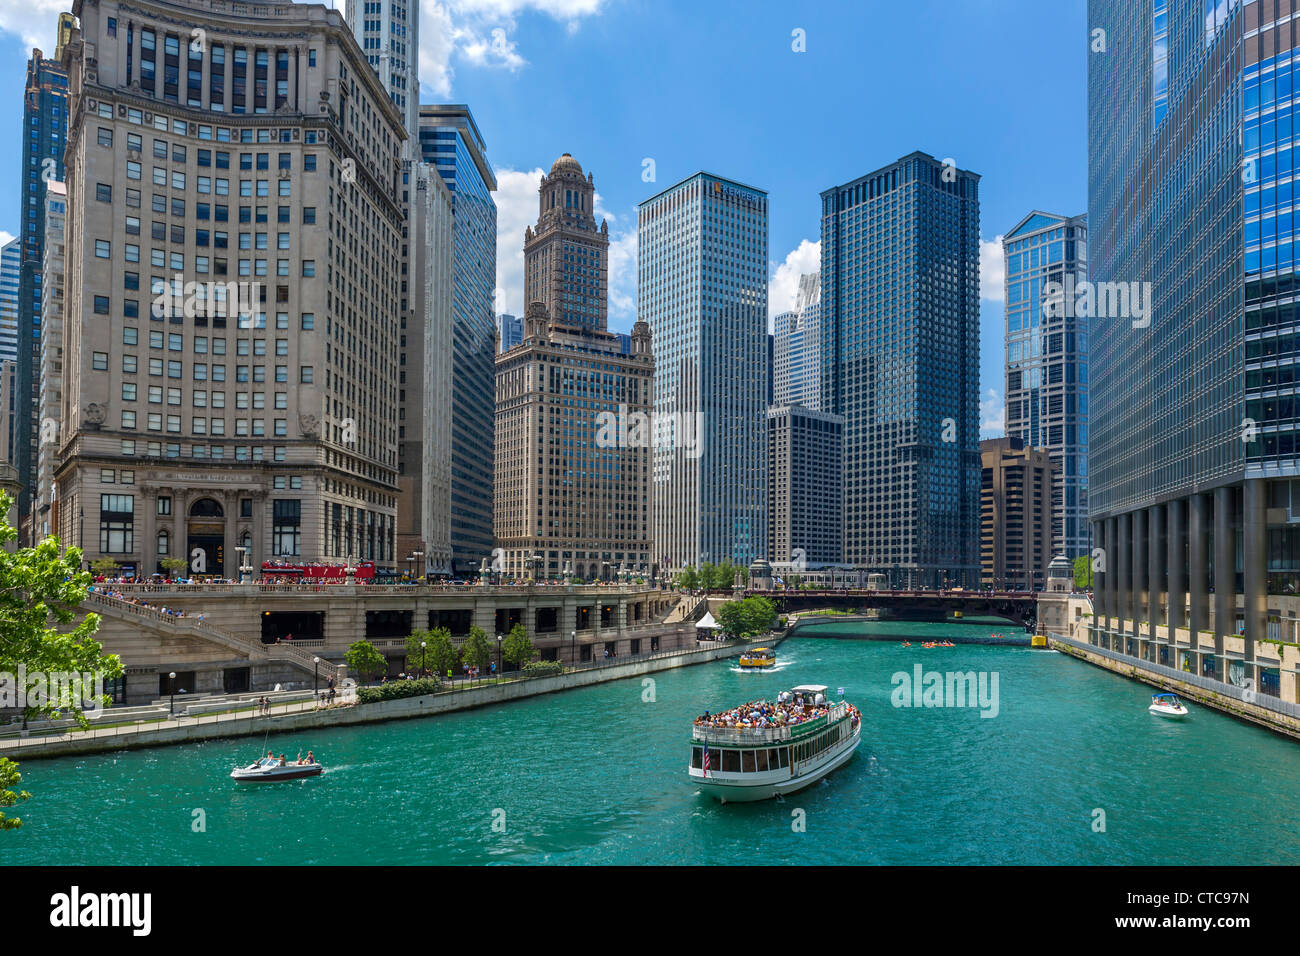 Chicago Historical Boat Tour